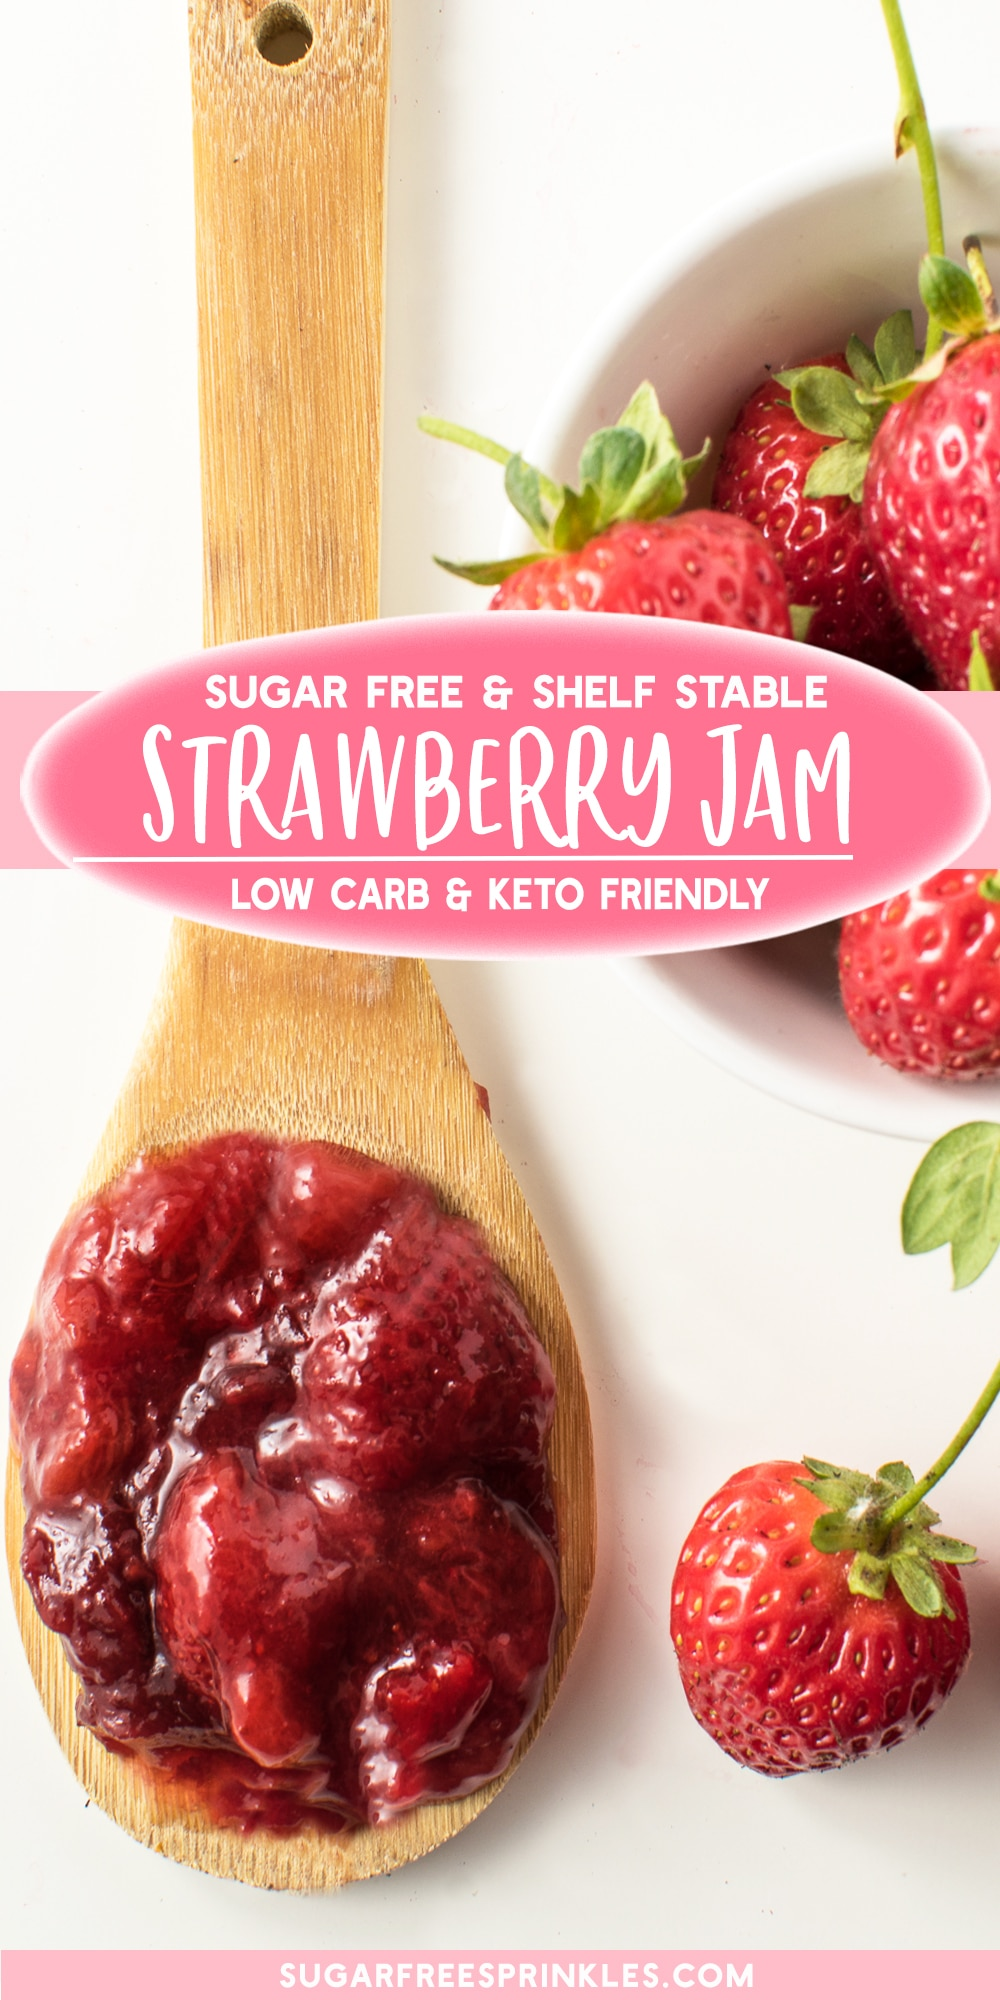 Sugar-Free Strawberry Jam - All the Taste Without the Carbs (shelf stable!)